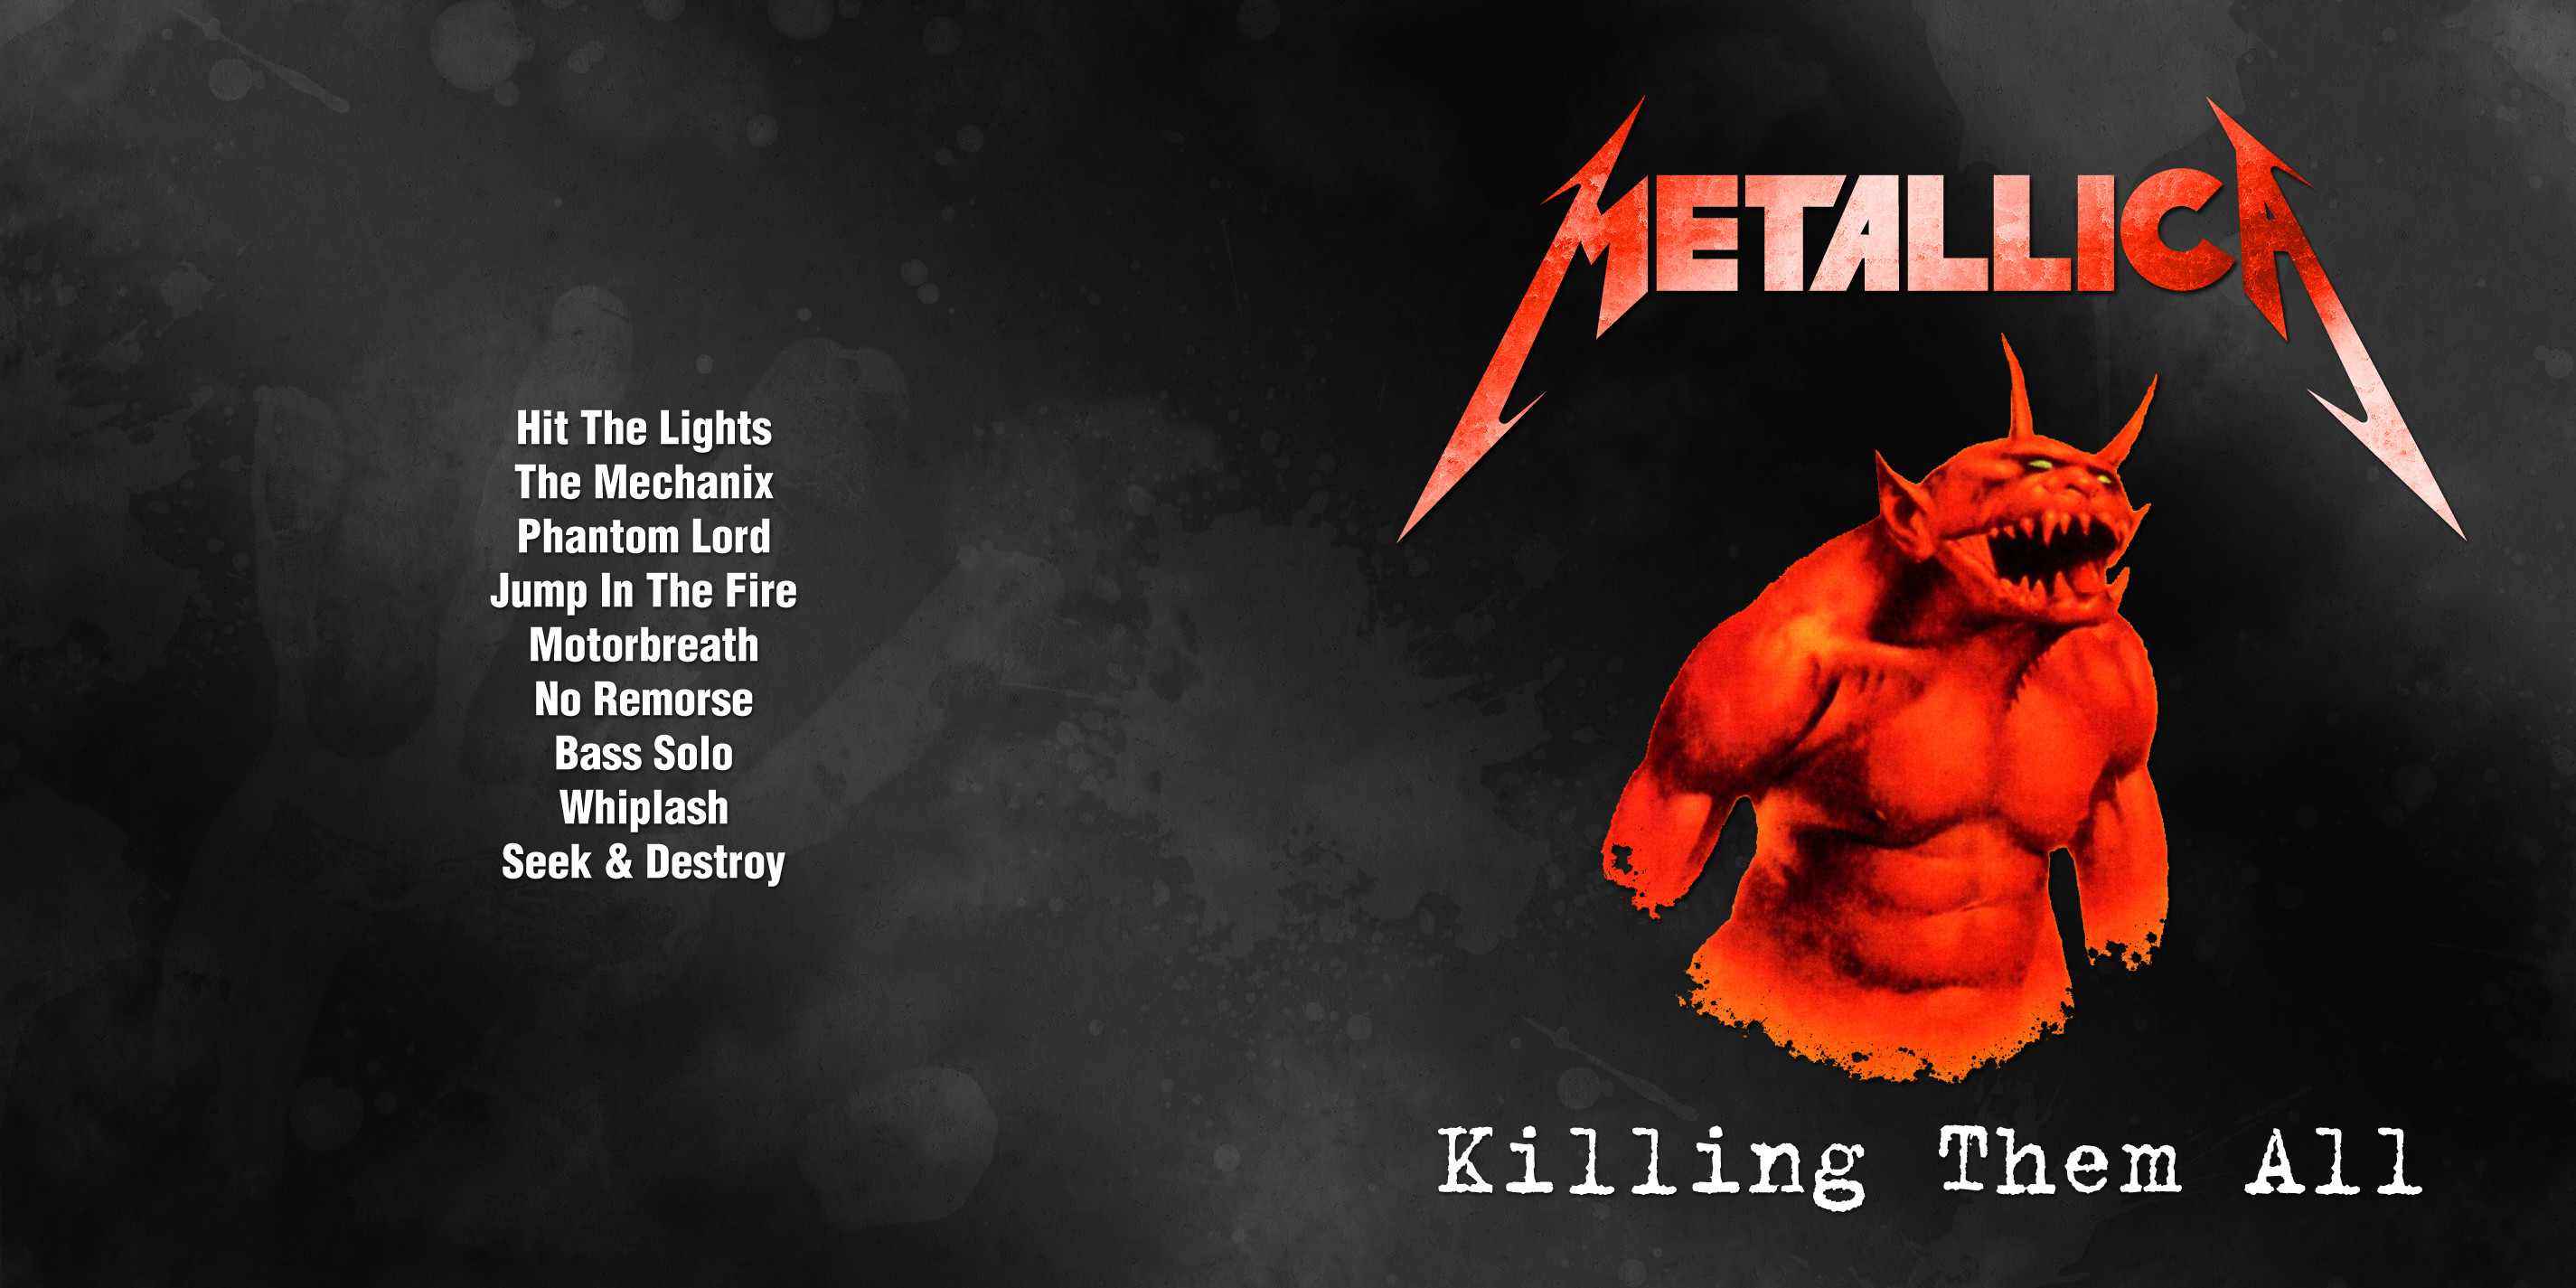 2850x1425 METALLICA thrash metal heavy album cover art poster posters dark wallpaper  |  | 120701 | WallpaperUP